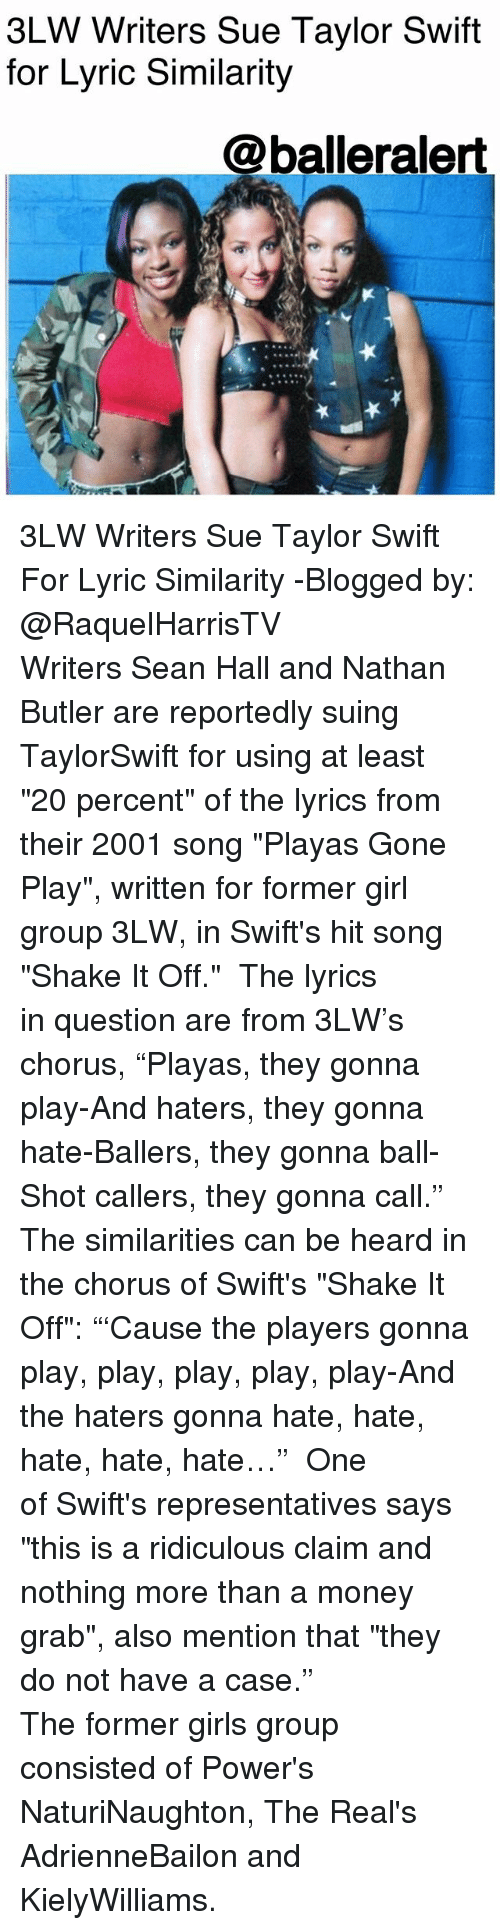 """haters gonna hate: 3LW Writers Sue Taylor Swift  for Lyric Similarity  @balleralert 3LW Writers Sue Taylor Swift For Lyric Similarity -Blogged by: @RaquelHarrisTV ⠀⠀⠀⠀⠀⠀⠀⠀⠀ Writers Sean Hall and Nathan Butler are reportedly suing TaylorSwift for using at least """"20 percent"""" of the lyrics from their 2001 song """"Playas Gone Play"""", written for former girl group 3LW, in Swift's hit song """"Shake It Off."""" ⠀⠀⠀⠀⠀⠀⠀⠀⠀ The lyrics in question are from 3LW's chorus, """"Playas, they gonna play-And haters, they gonna hate-Ballers, they gonna ball-Shot callers, they gonna call."""" The similarities can be heard in the chorus of Swift's """"Shake It Off"""": """"'Cause the players gonna play, play, play, play, play-And the haters gonna hate, hate, hate, hate, hate…"""" ⠀⠀⠀⠀⠀⠀⠀⠀⠀ One of Swift's representatives says """"this is a ridiculous claim and nothing more than a money grab"""", also mention that """"they do not have a case."""" ⠀⠀⠀⠀⠀⠀⠀⠀⠀ ⠀⠀⠀⠀⠀⠀⠀ The former girls group consisted of Power's NaturiNaughton, The Real's AdrienneBailon and KielyWilliams."""